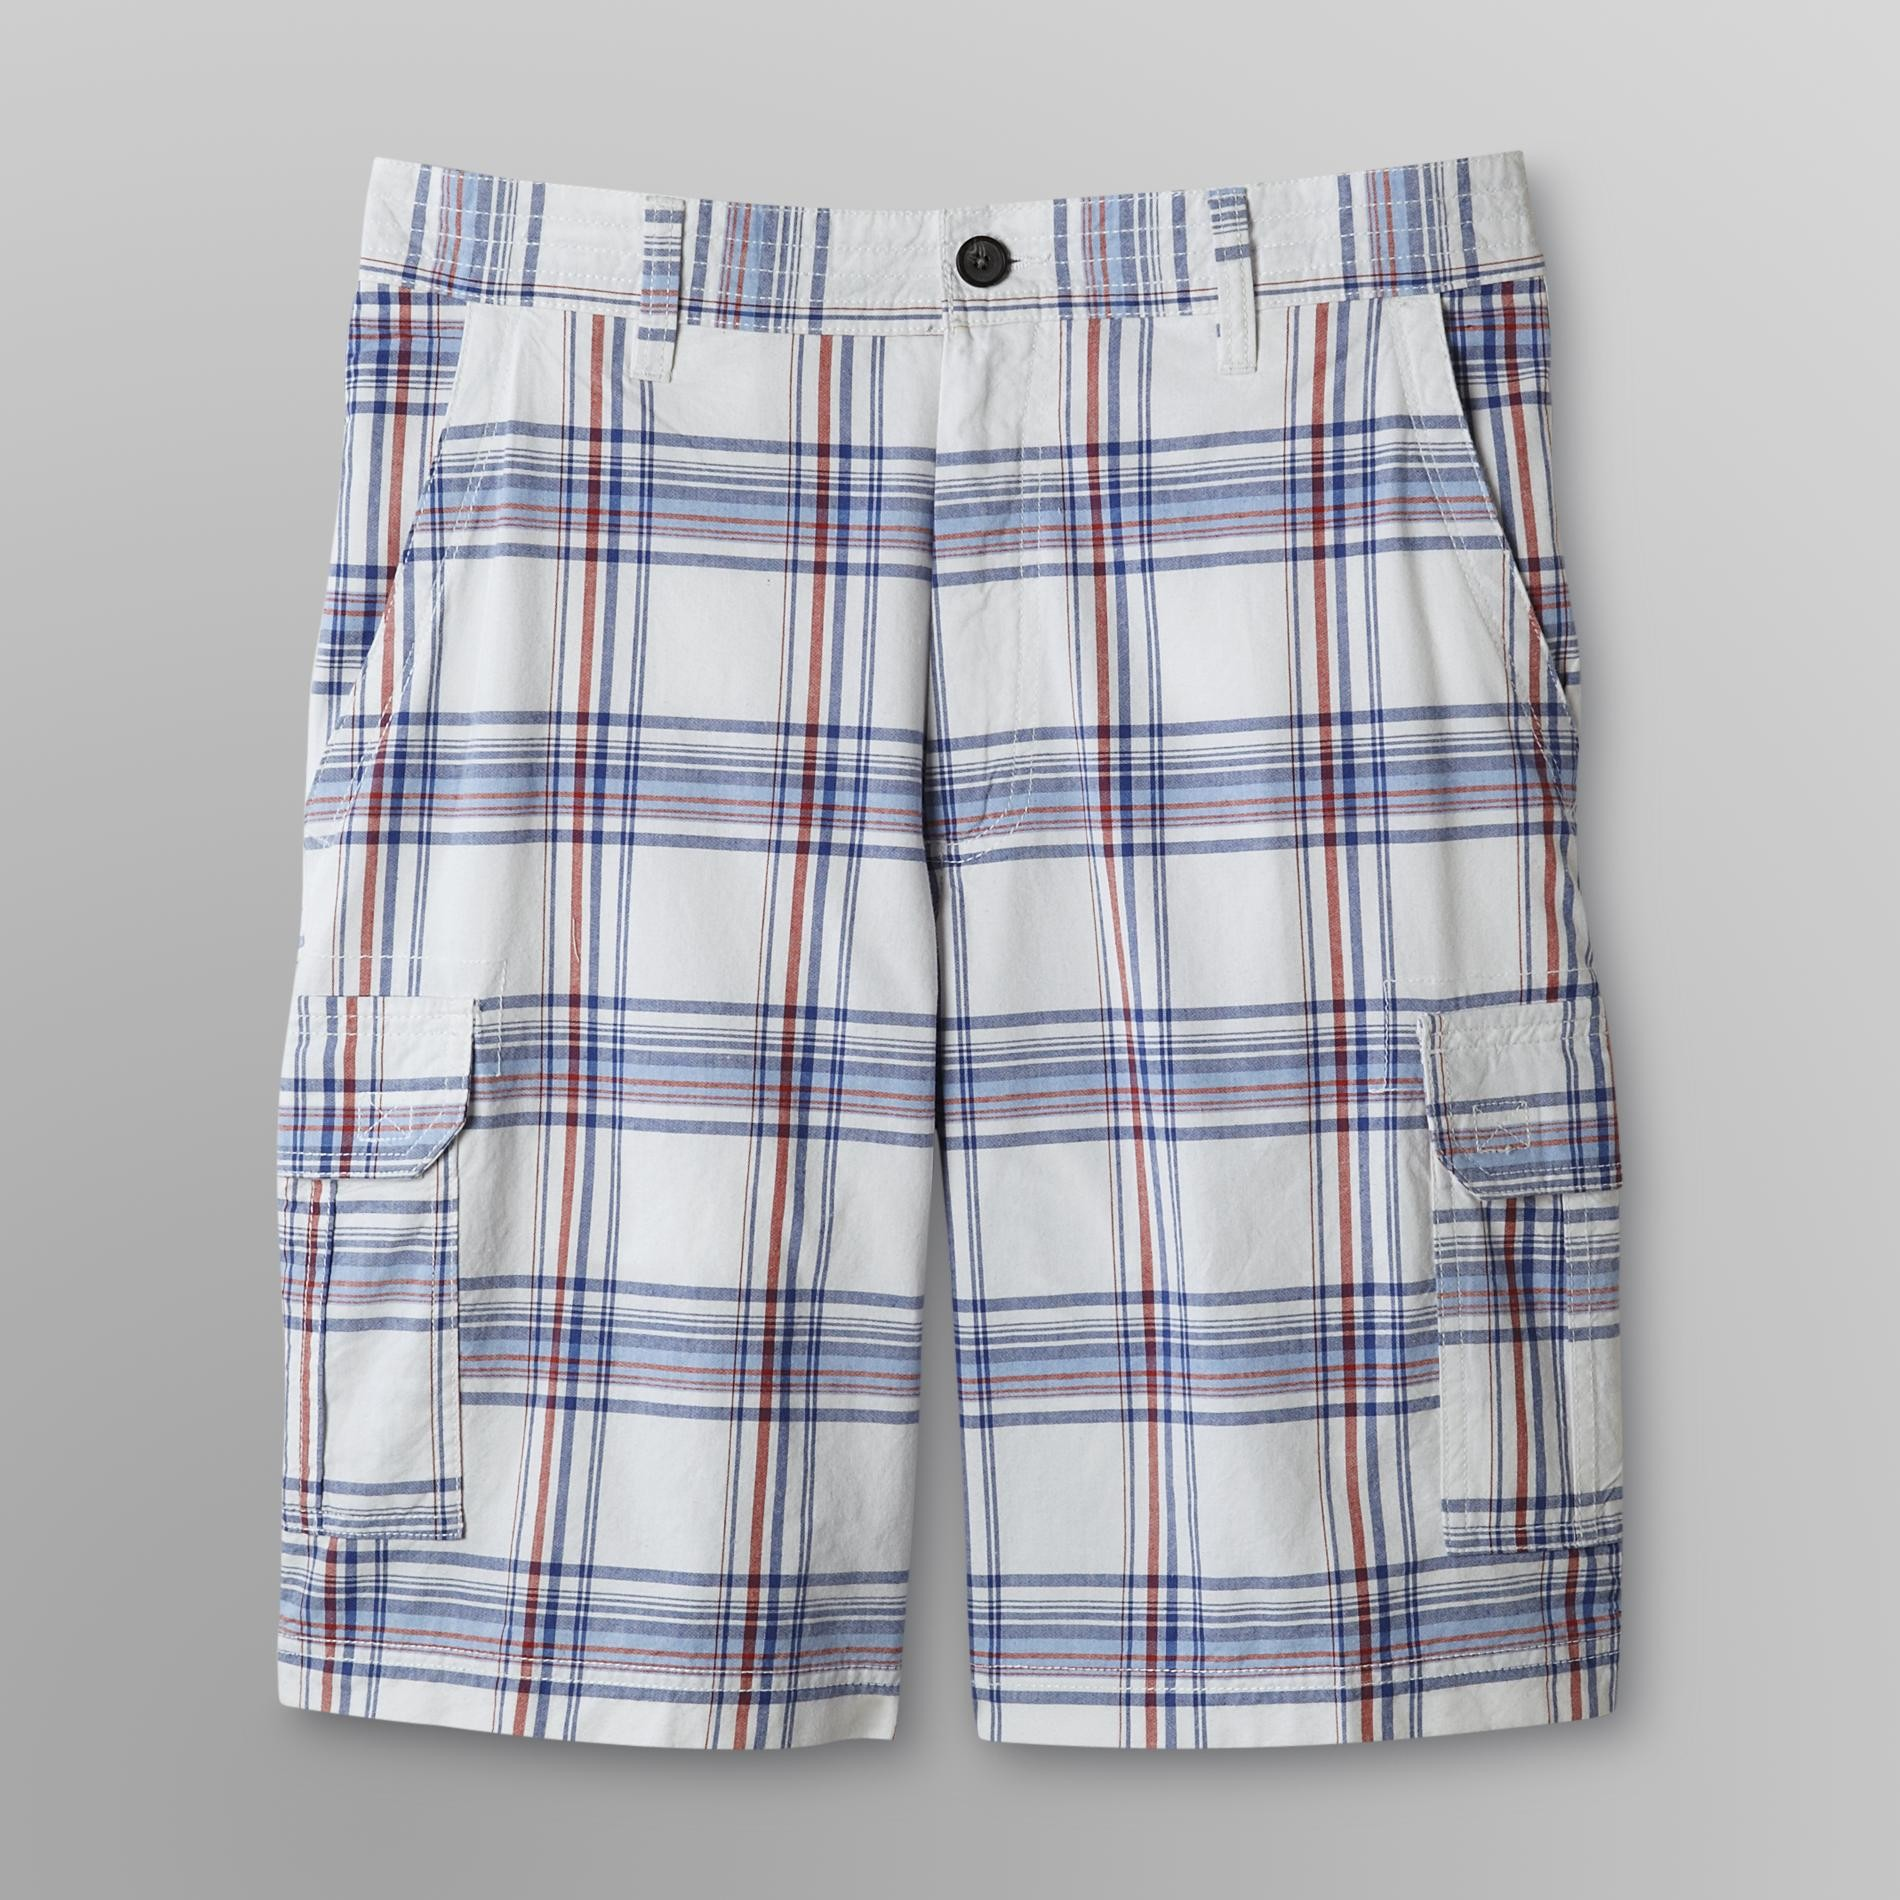 Basic Editions Men's Cargo Shorts - Plaid at Kmart.com